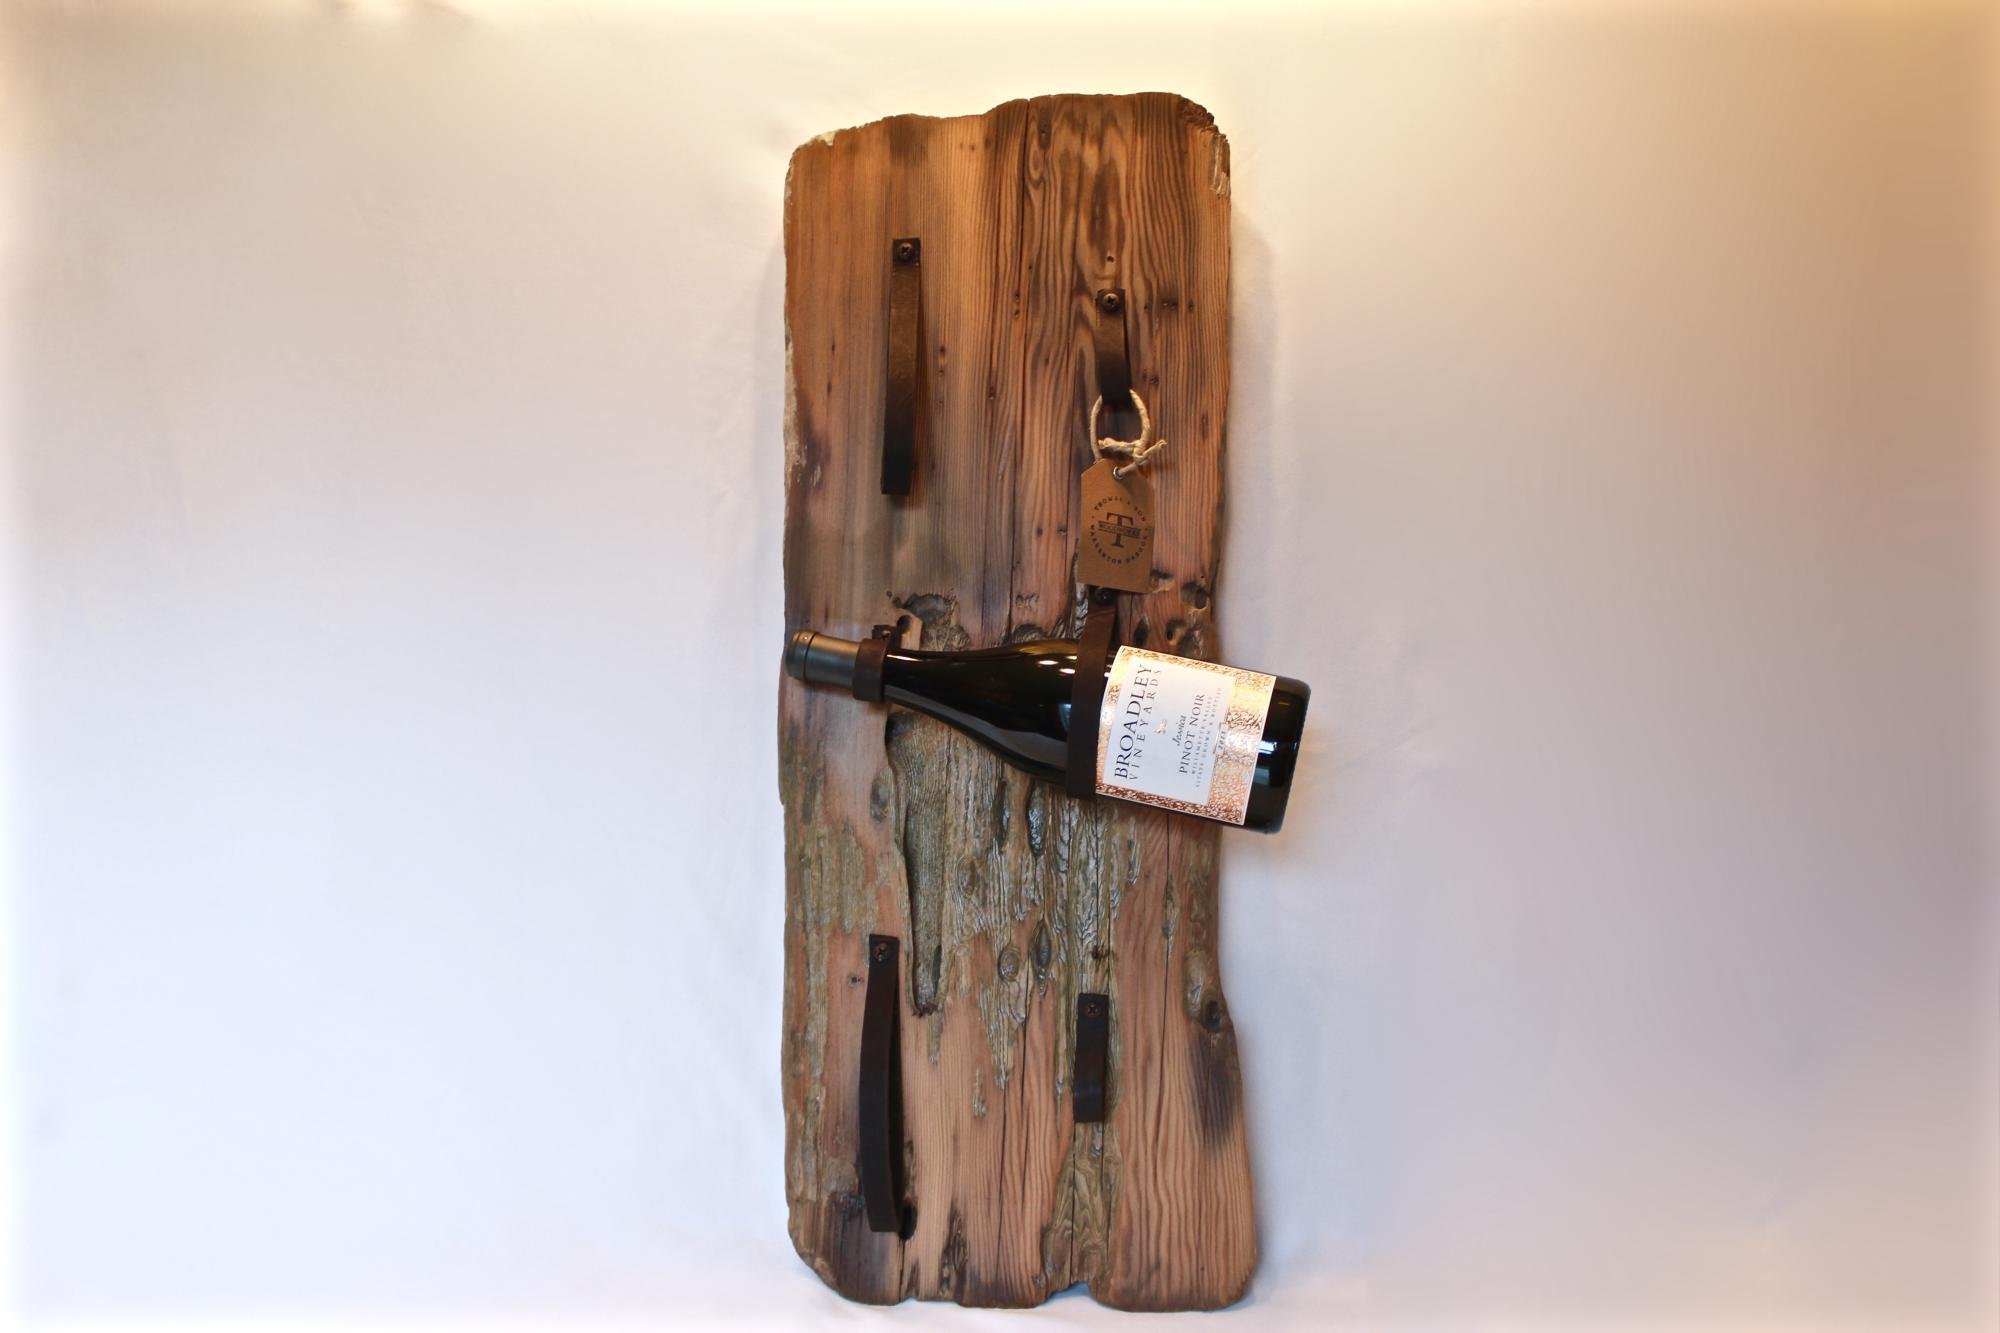 Reclaimed wood and leather wine racks. $95-$175